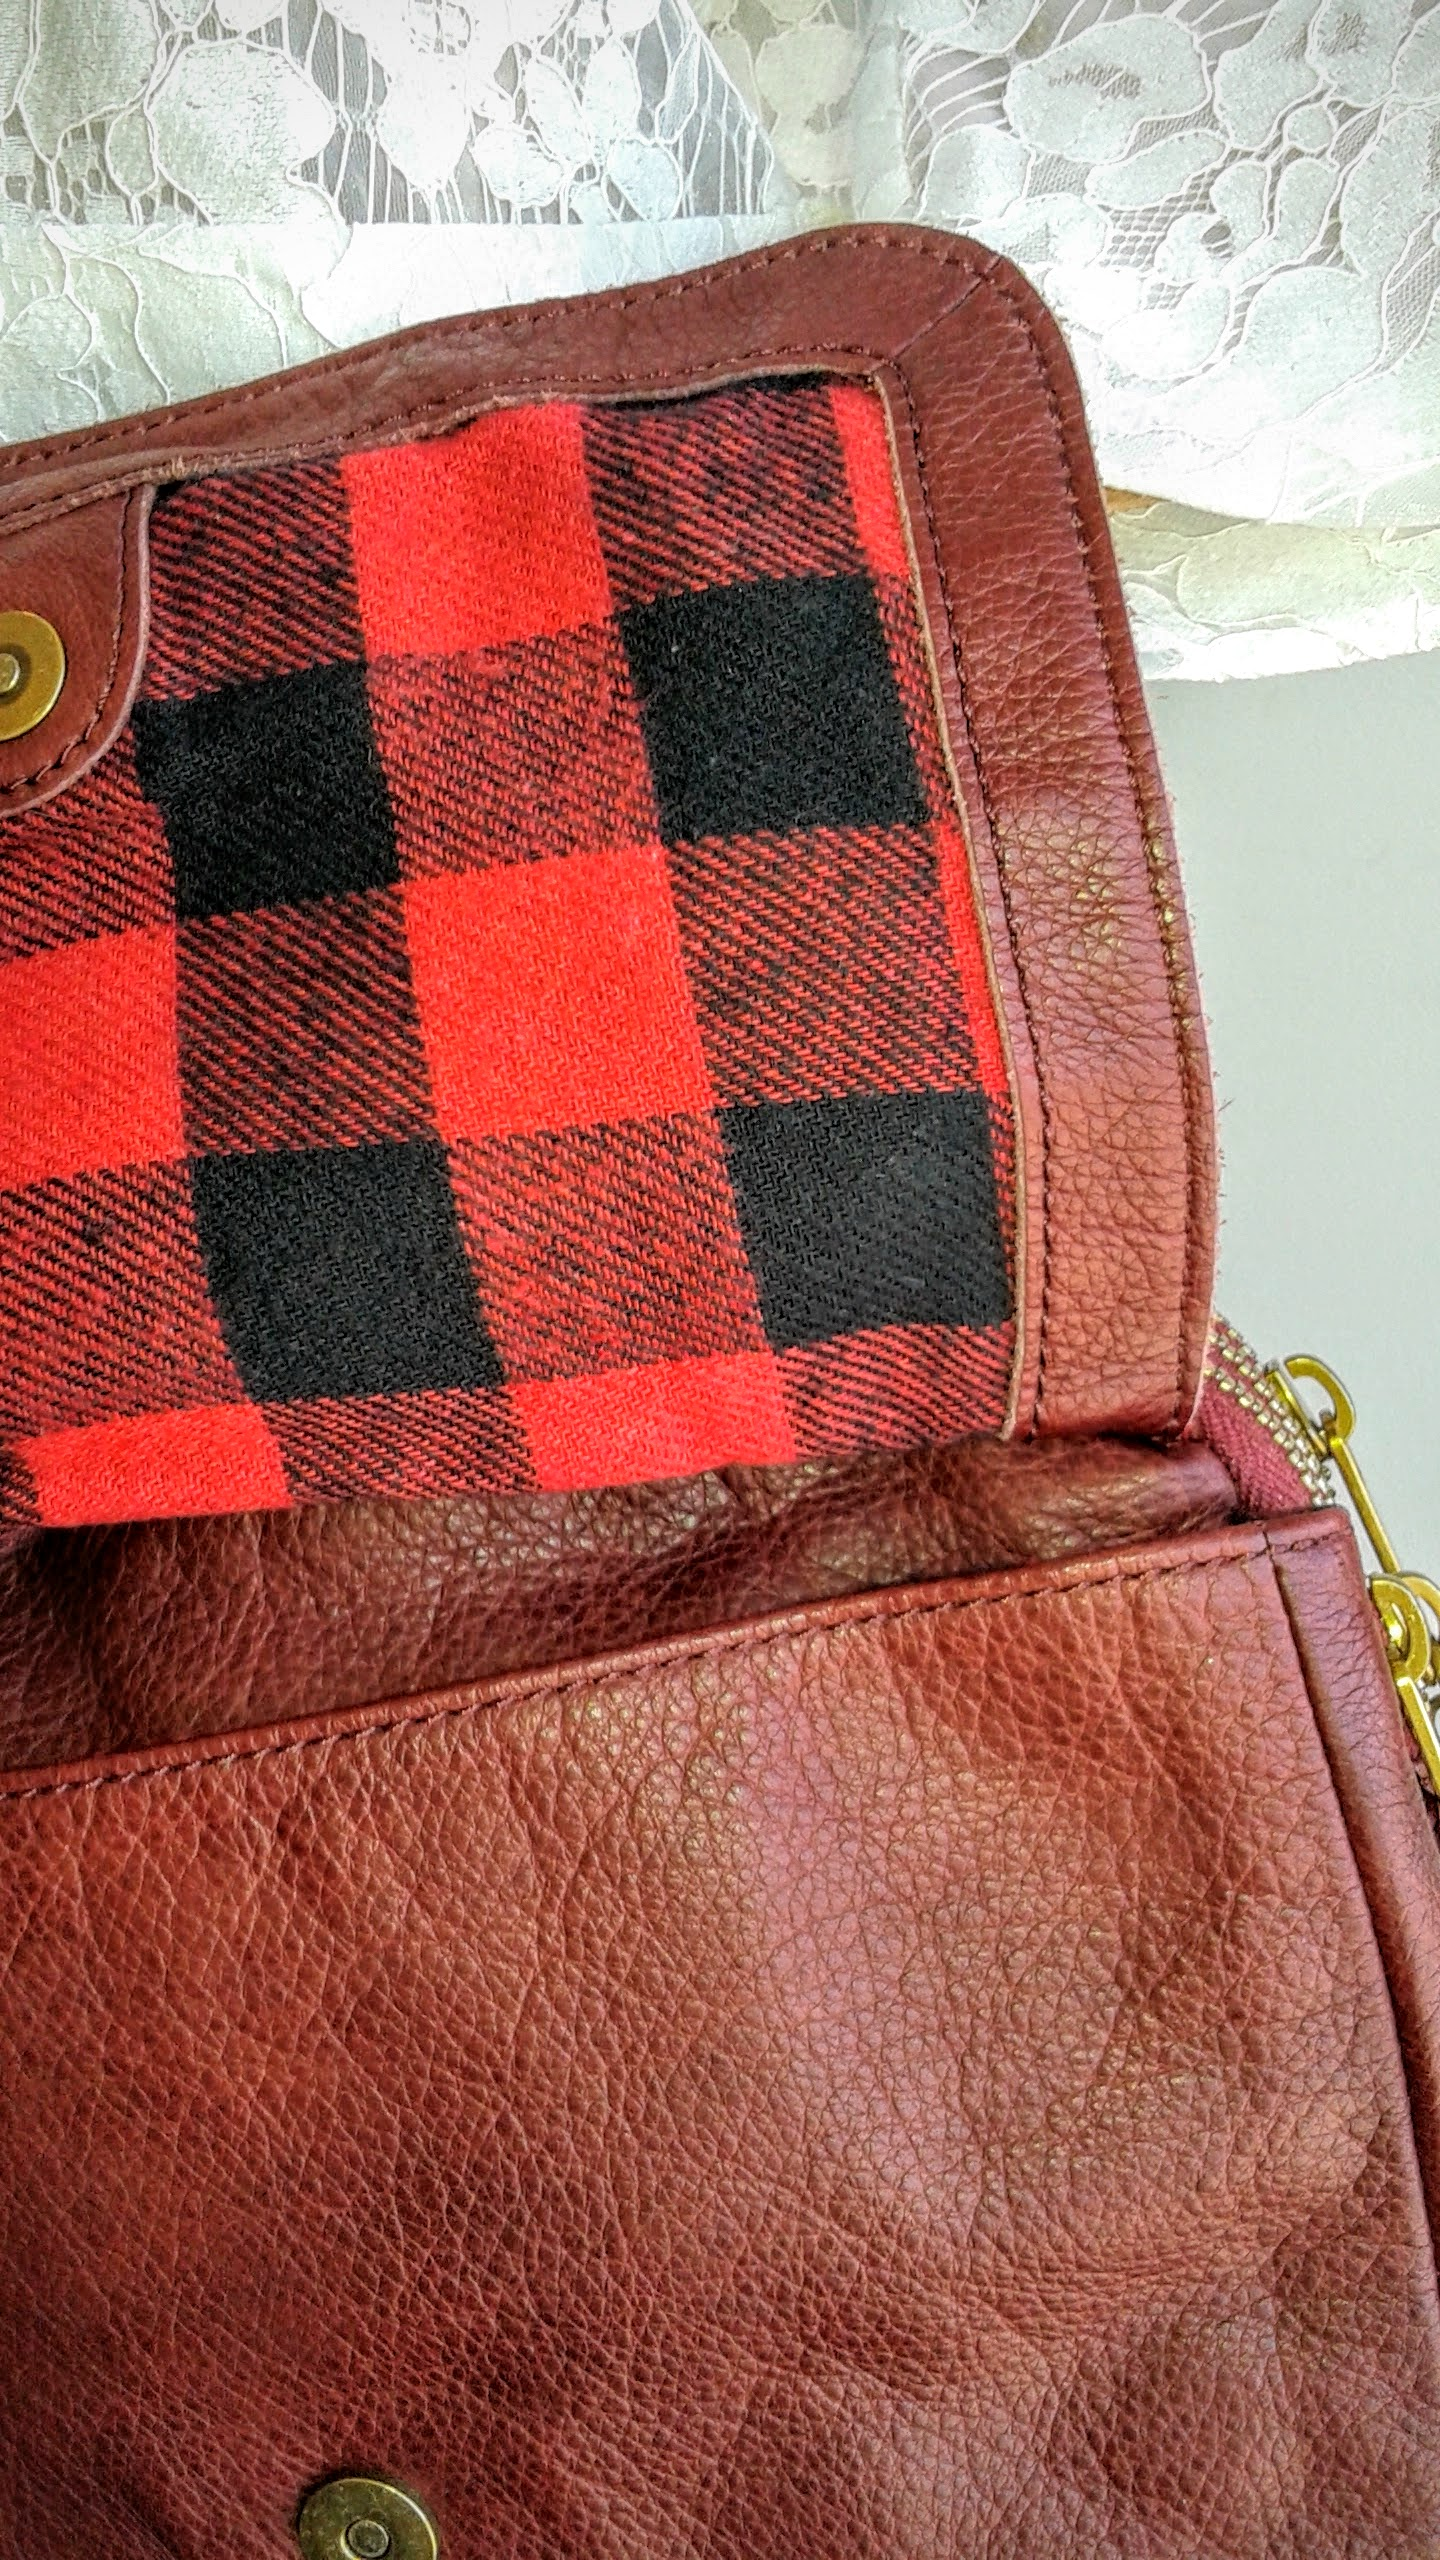 Plaid flannel lining inside the purse!